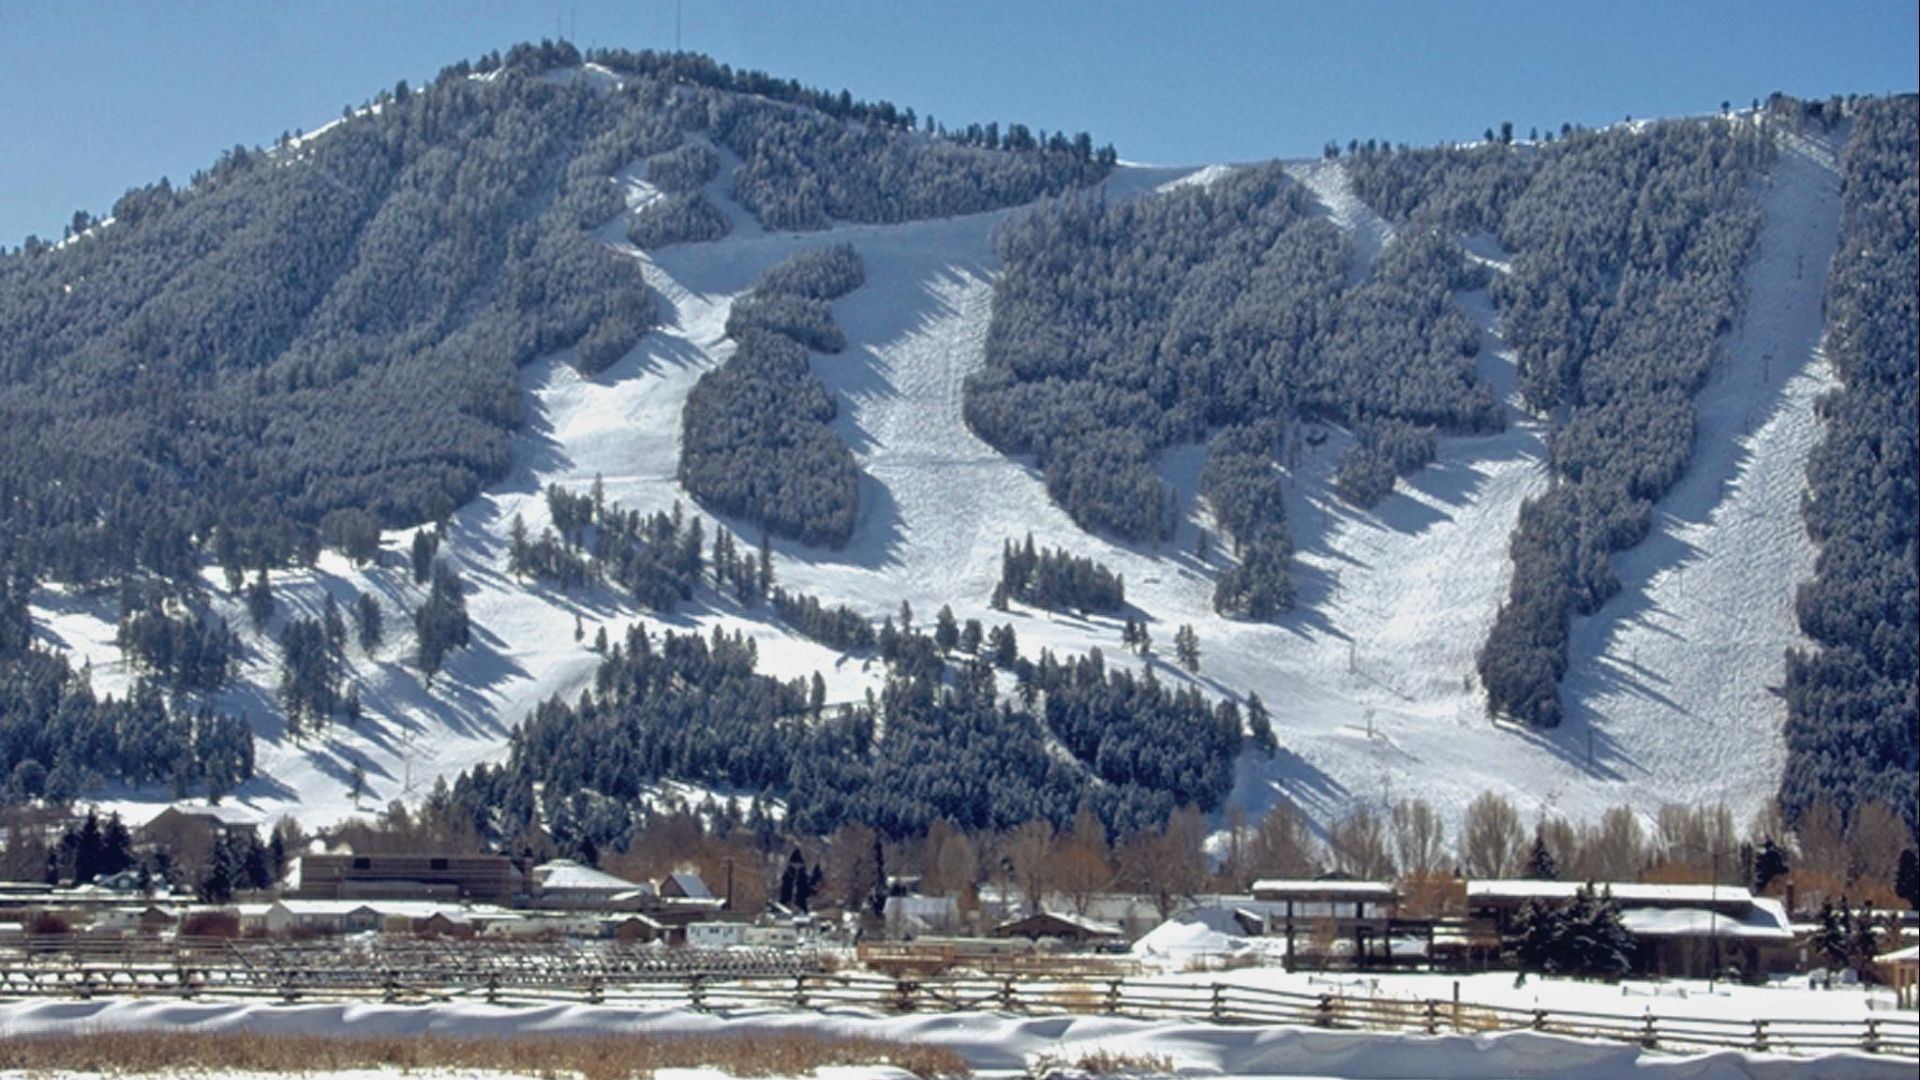 Snow King, Wyoming's oldest ski resort, is in the town of Jackson and offers a variety of winter activity and events.